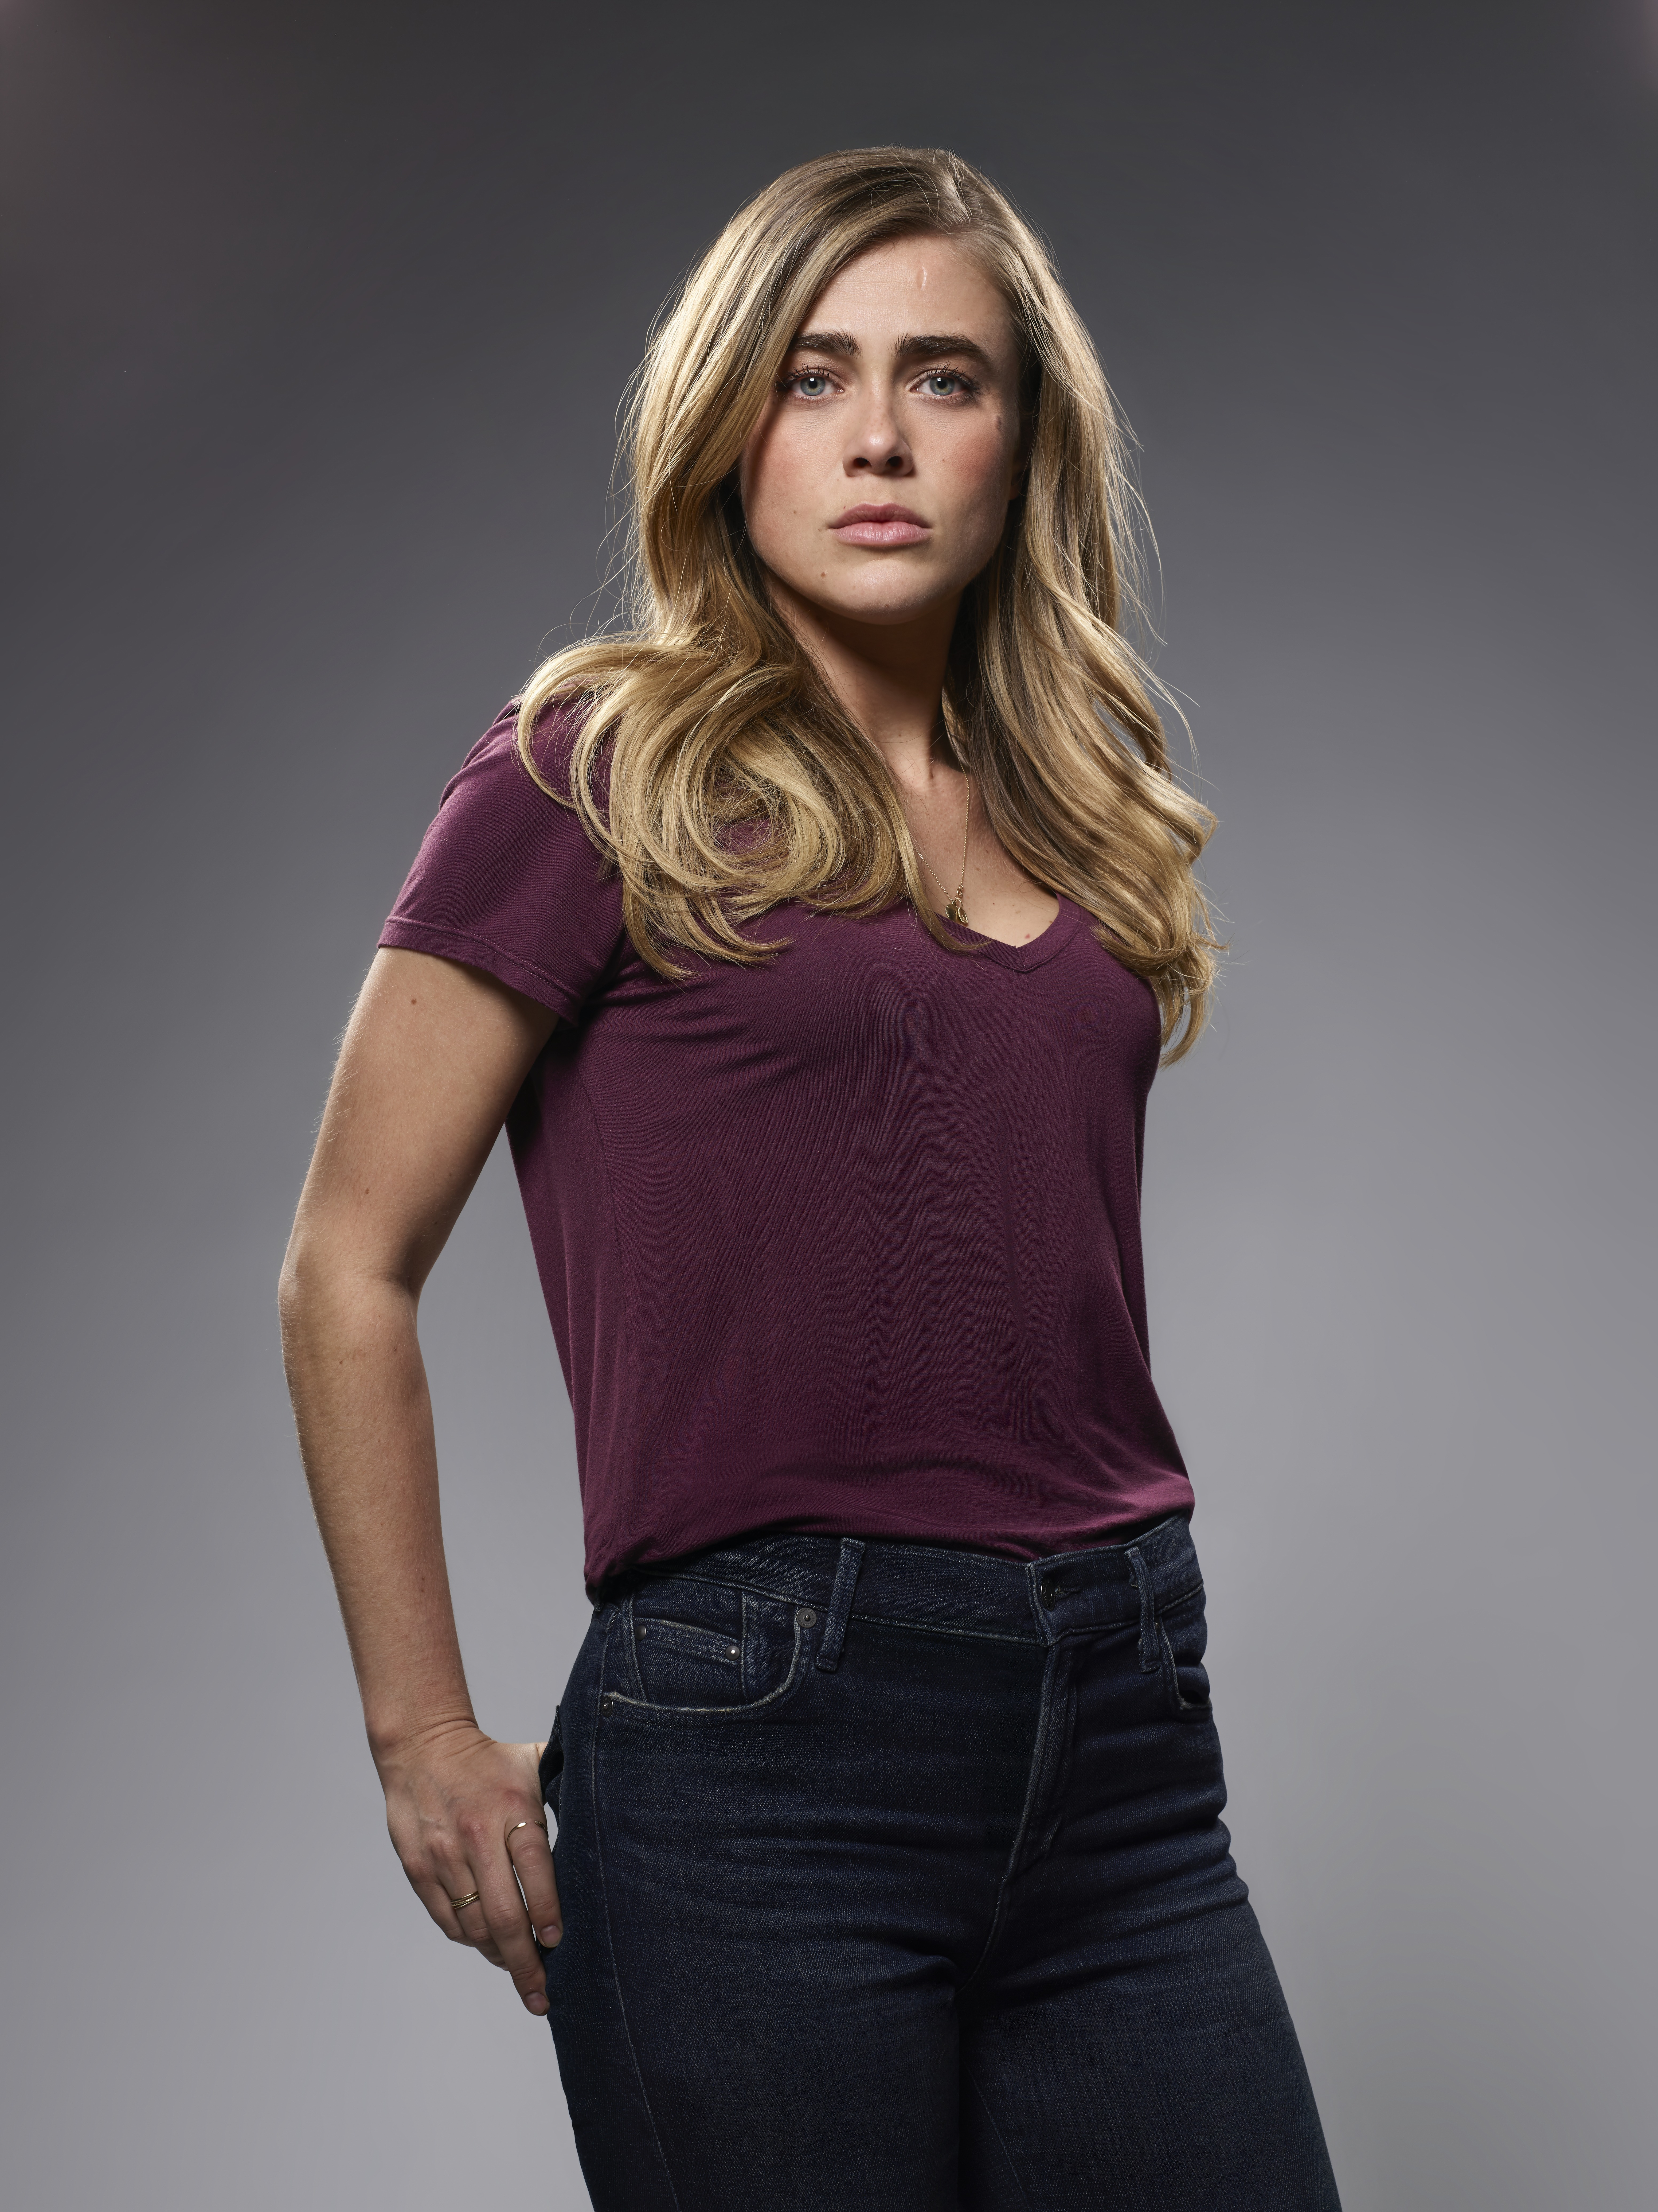 Melissa's role in Manifest has been a career-changer.